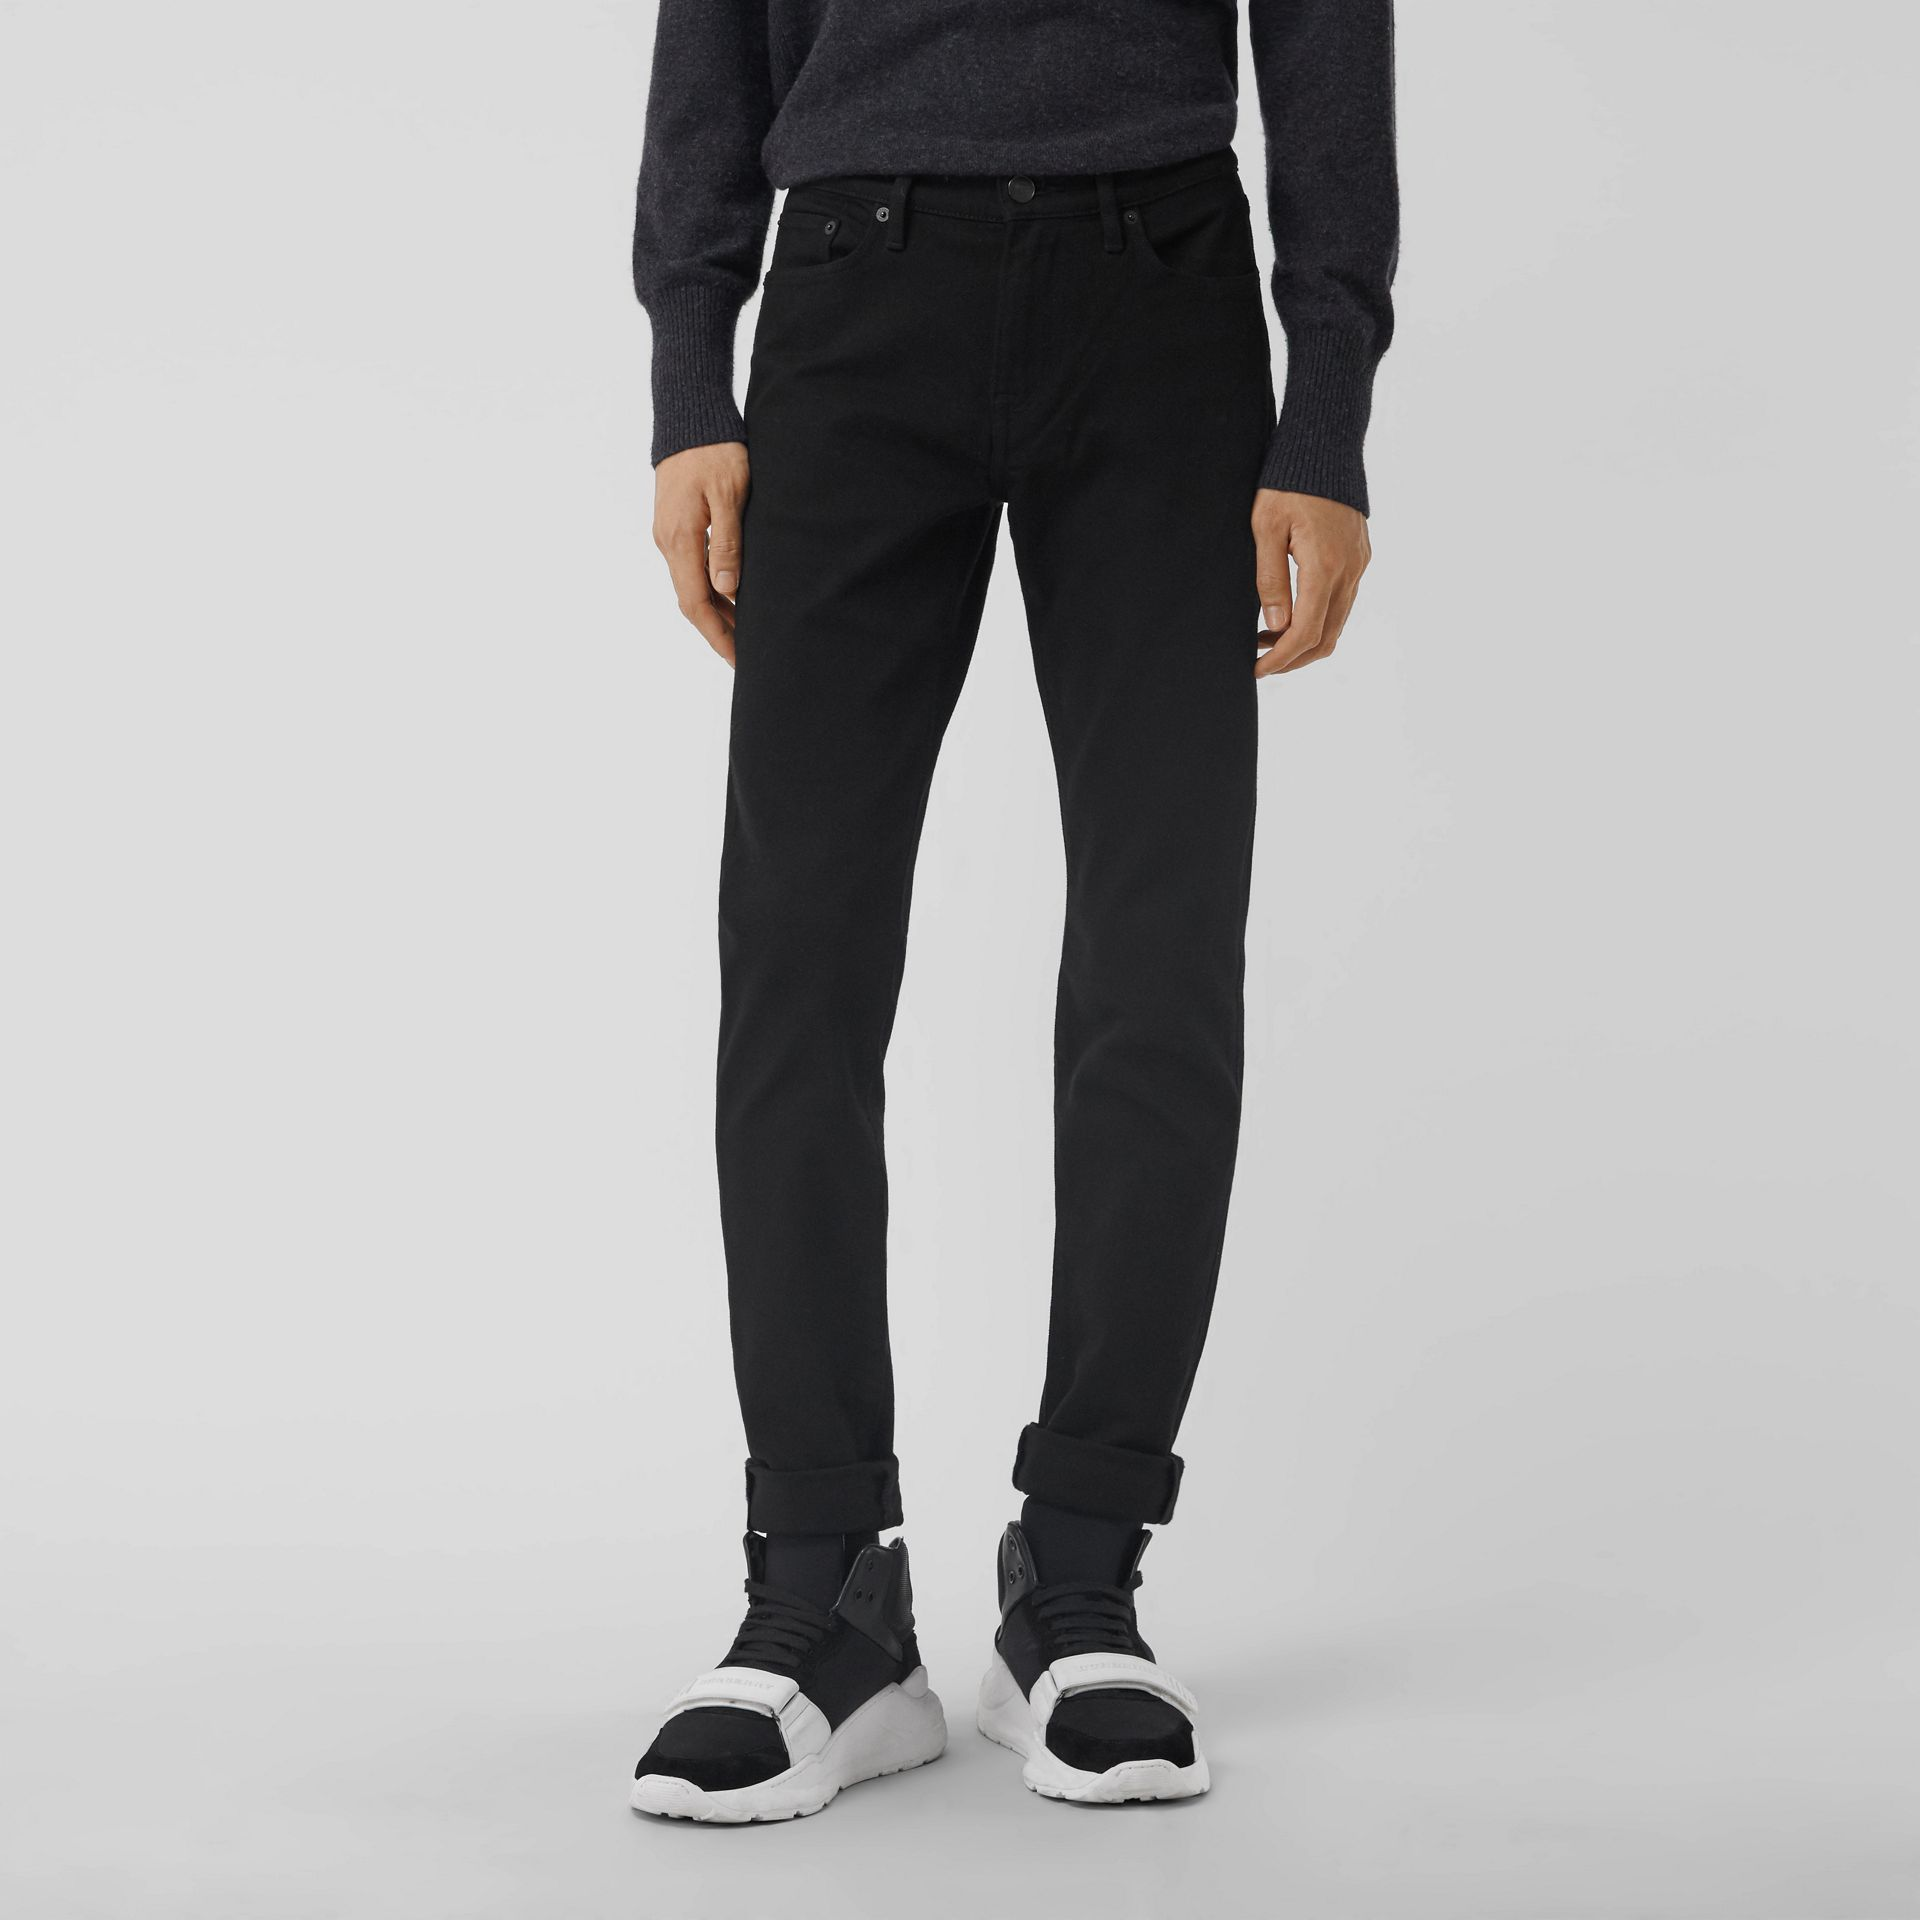 Jean denim extensible de coupe étroite (Noir) - Homme | Burberry Canada - photo de la galerie 4